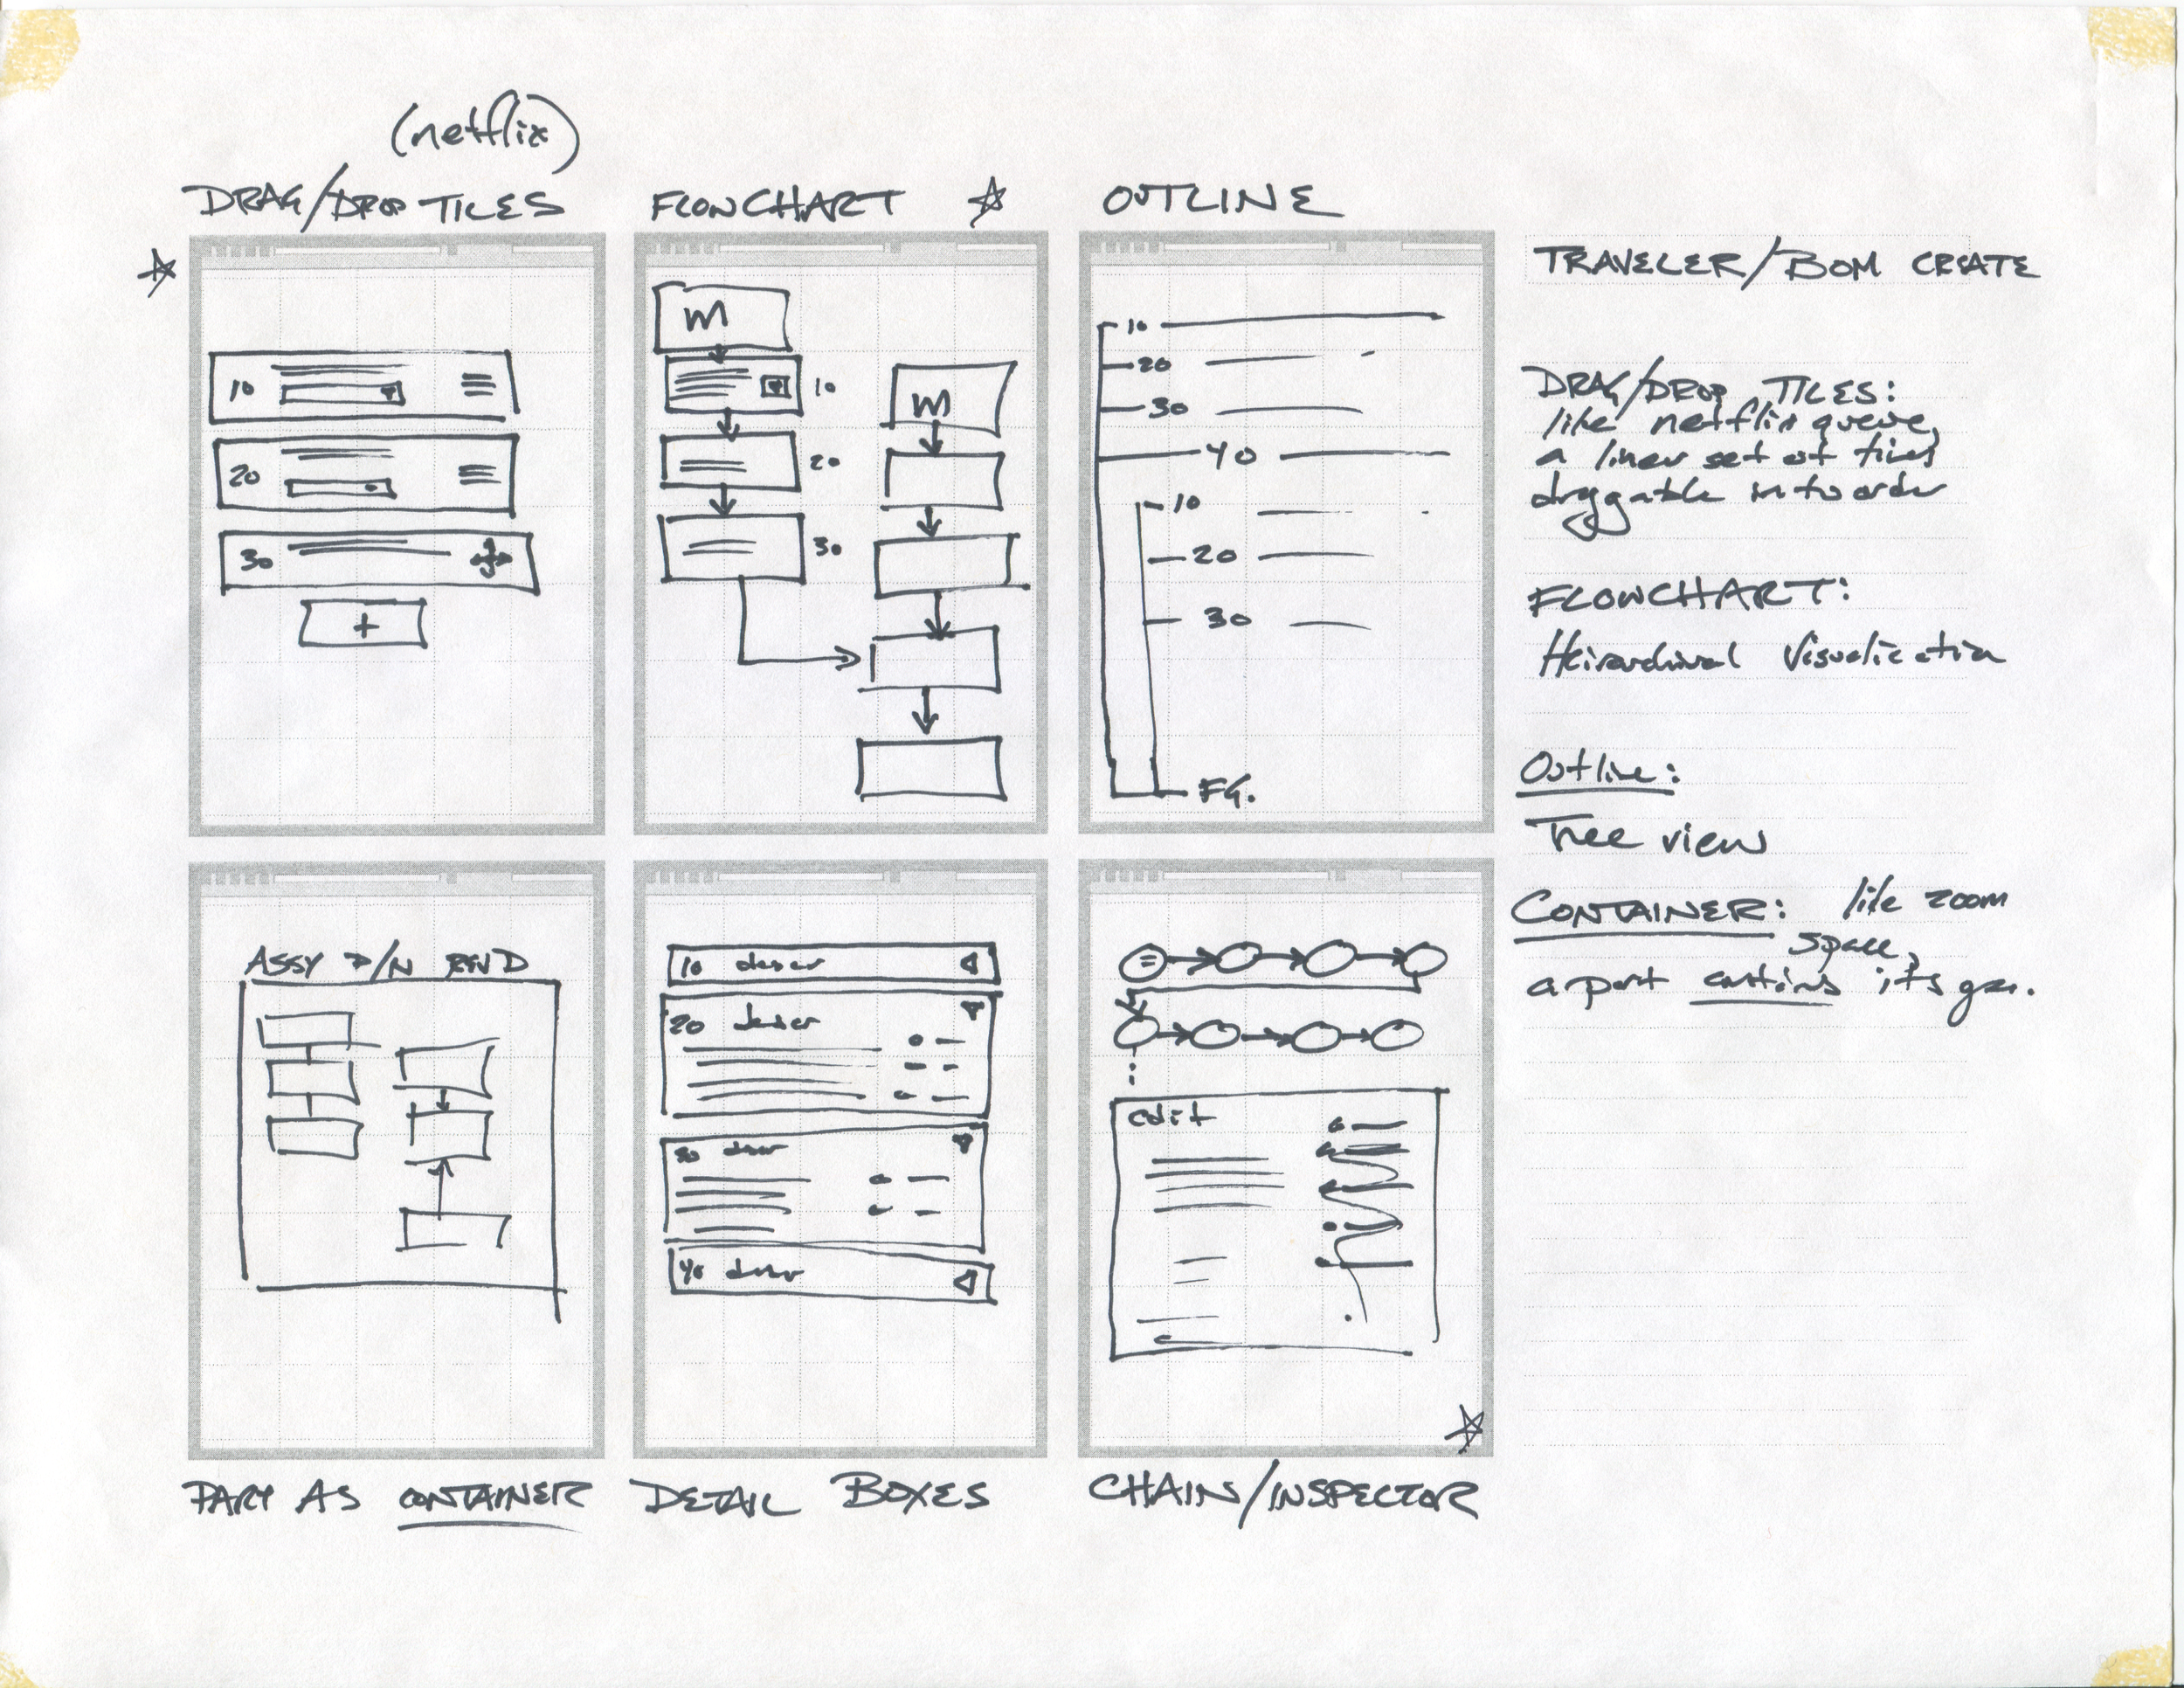 Broad ideation sketching for production workflow display & editing